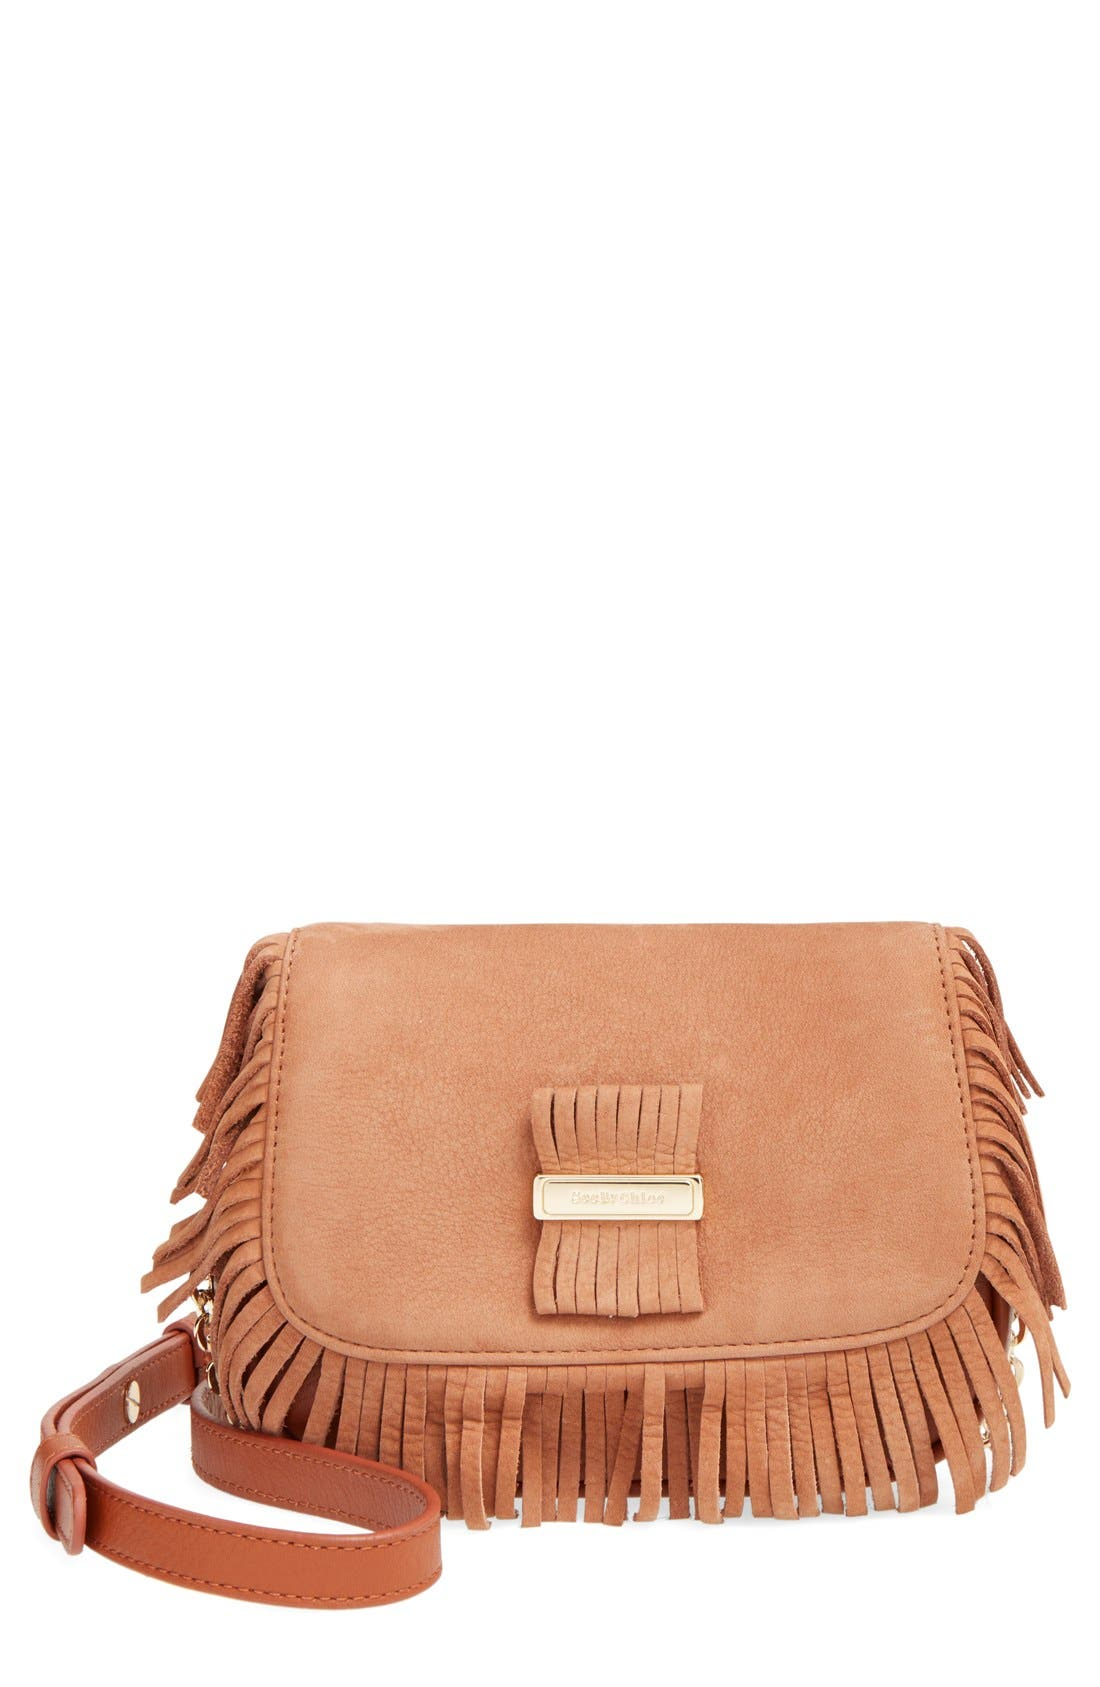 Alternate Image 1 Selected - See by Chloé 'Medium Paige' Fringe Leather & Suede Clutch